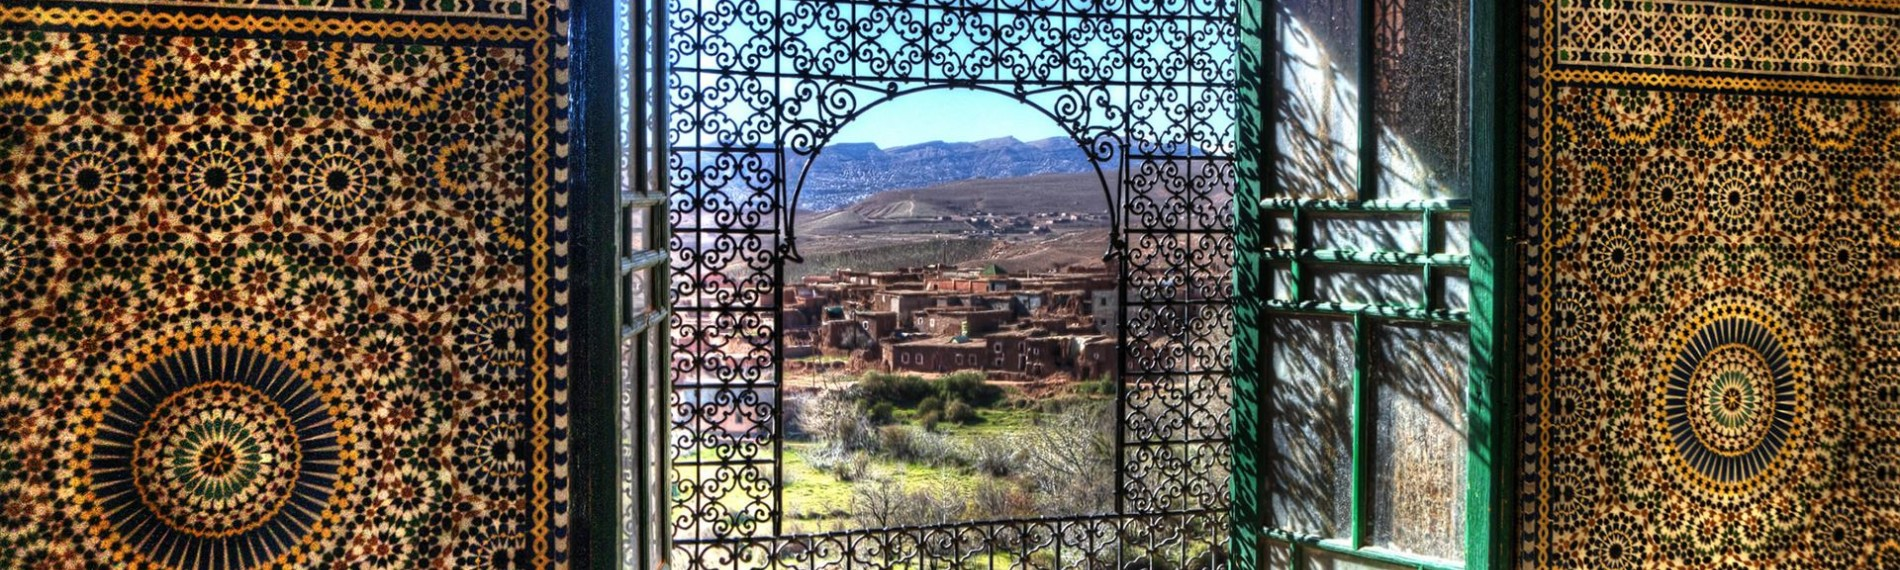 Morocco group tours from Spain